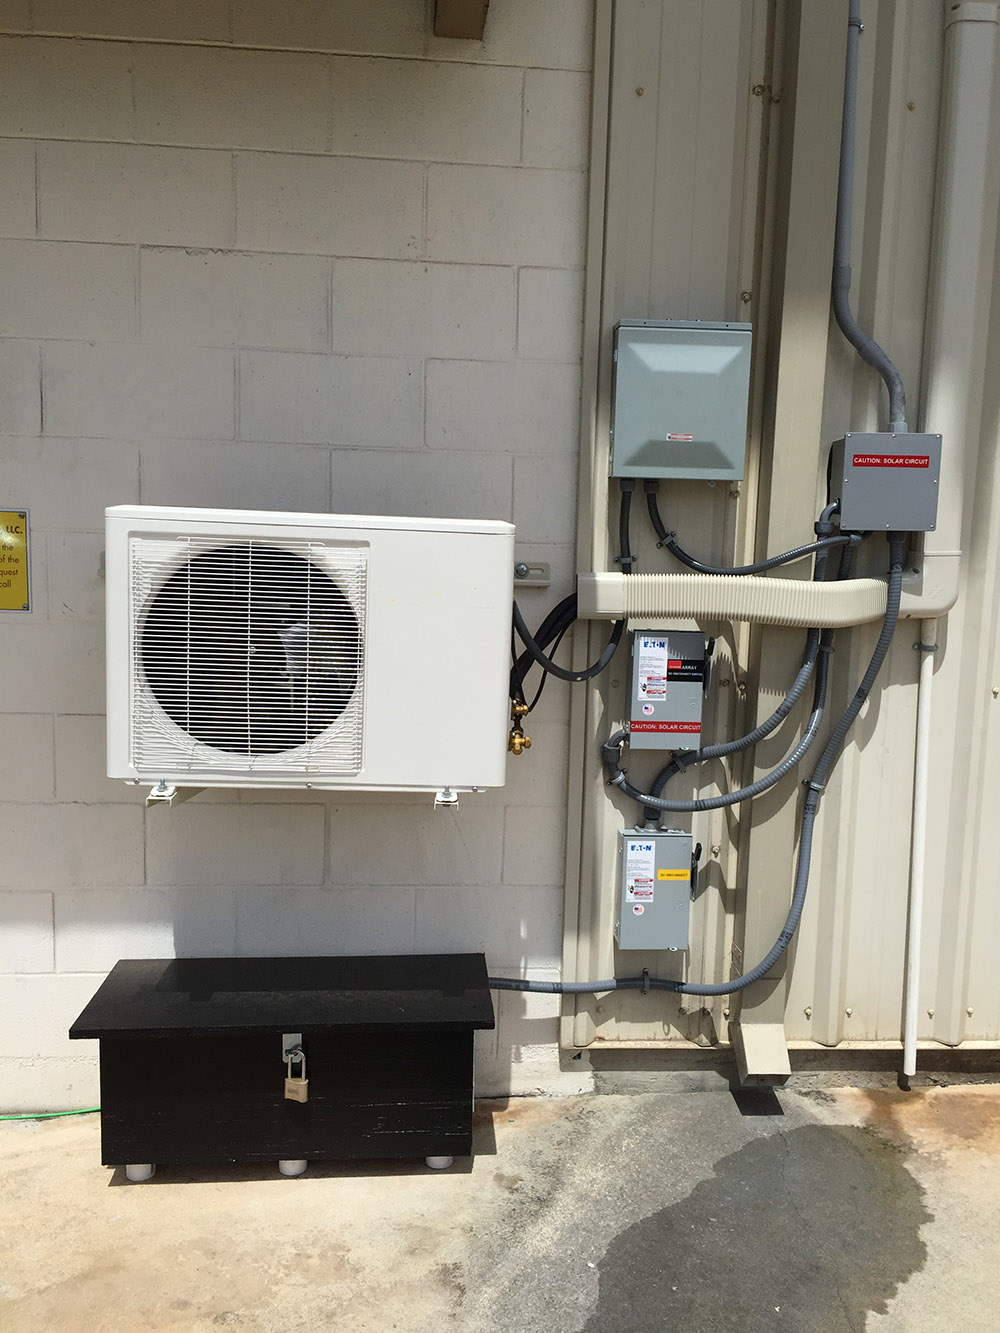 Mr Cool DC 48v 100% Solar Air Conditioner installed in USA